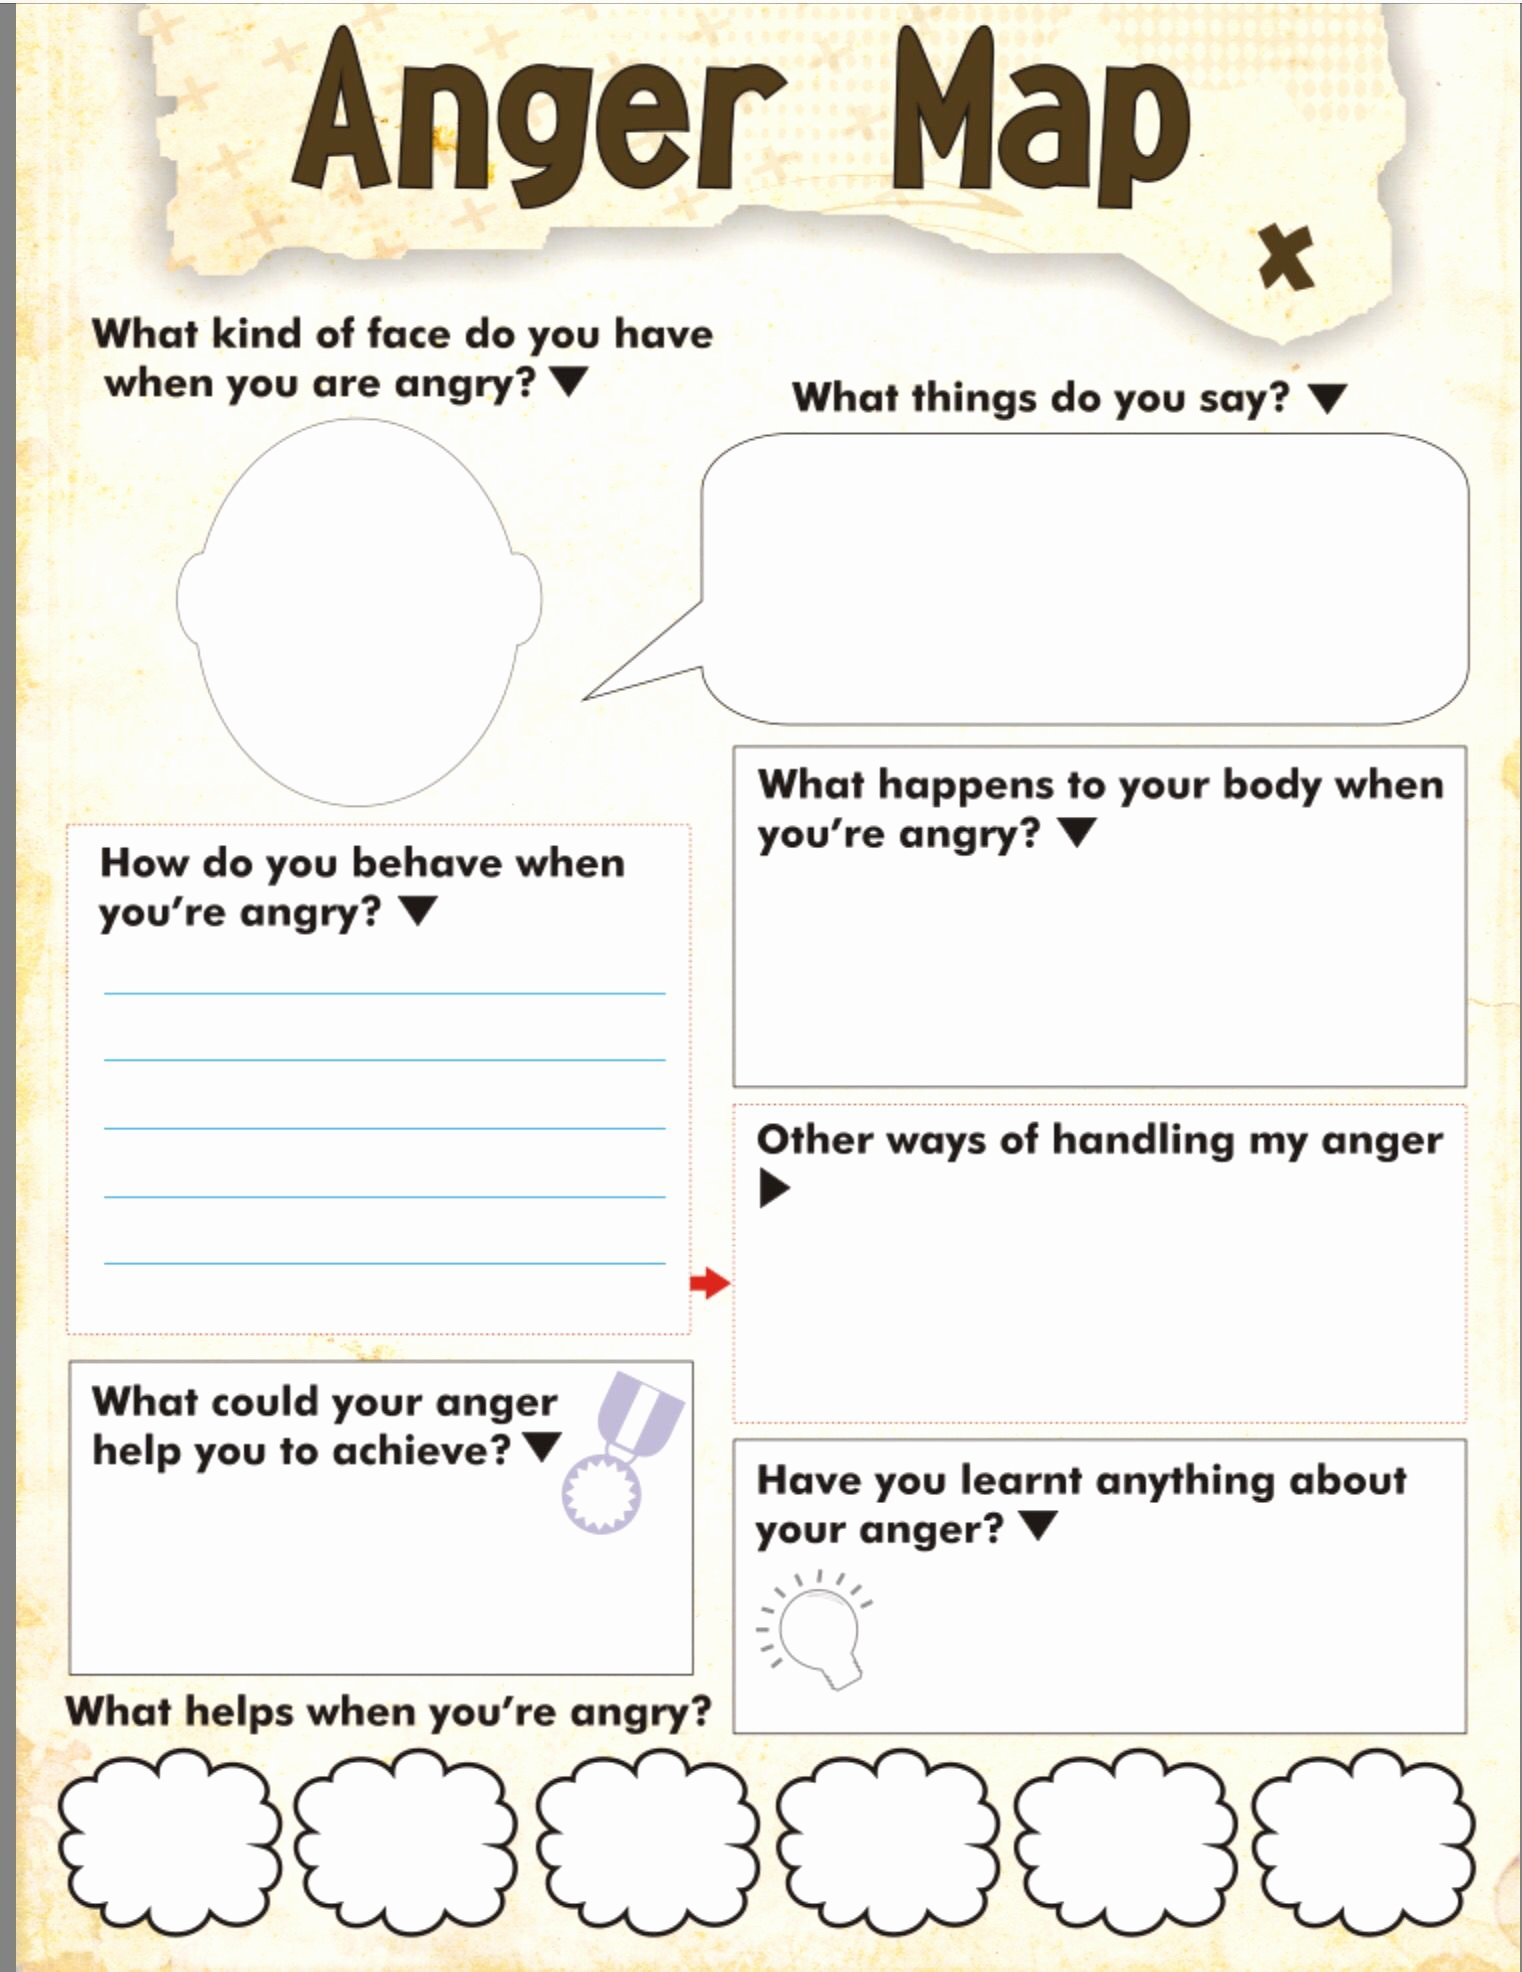 Anger Management Worksheet for Teenagers Lovely Anger Map Kids Worksheet Free Printable